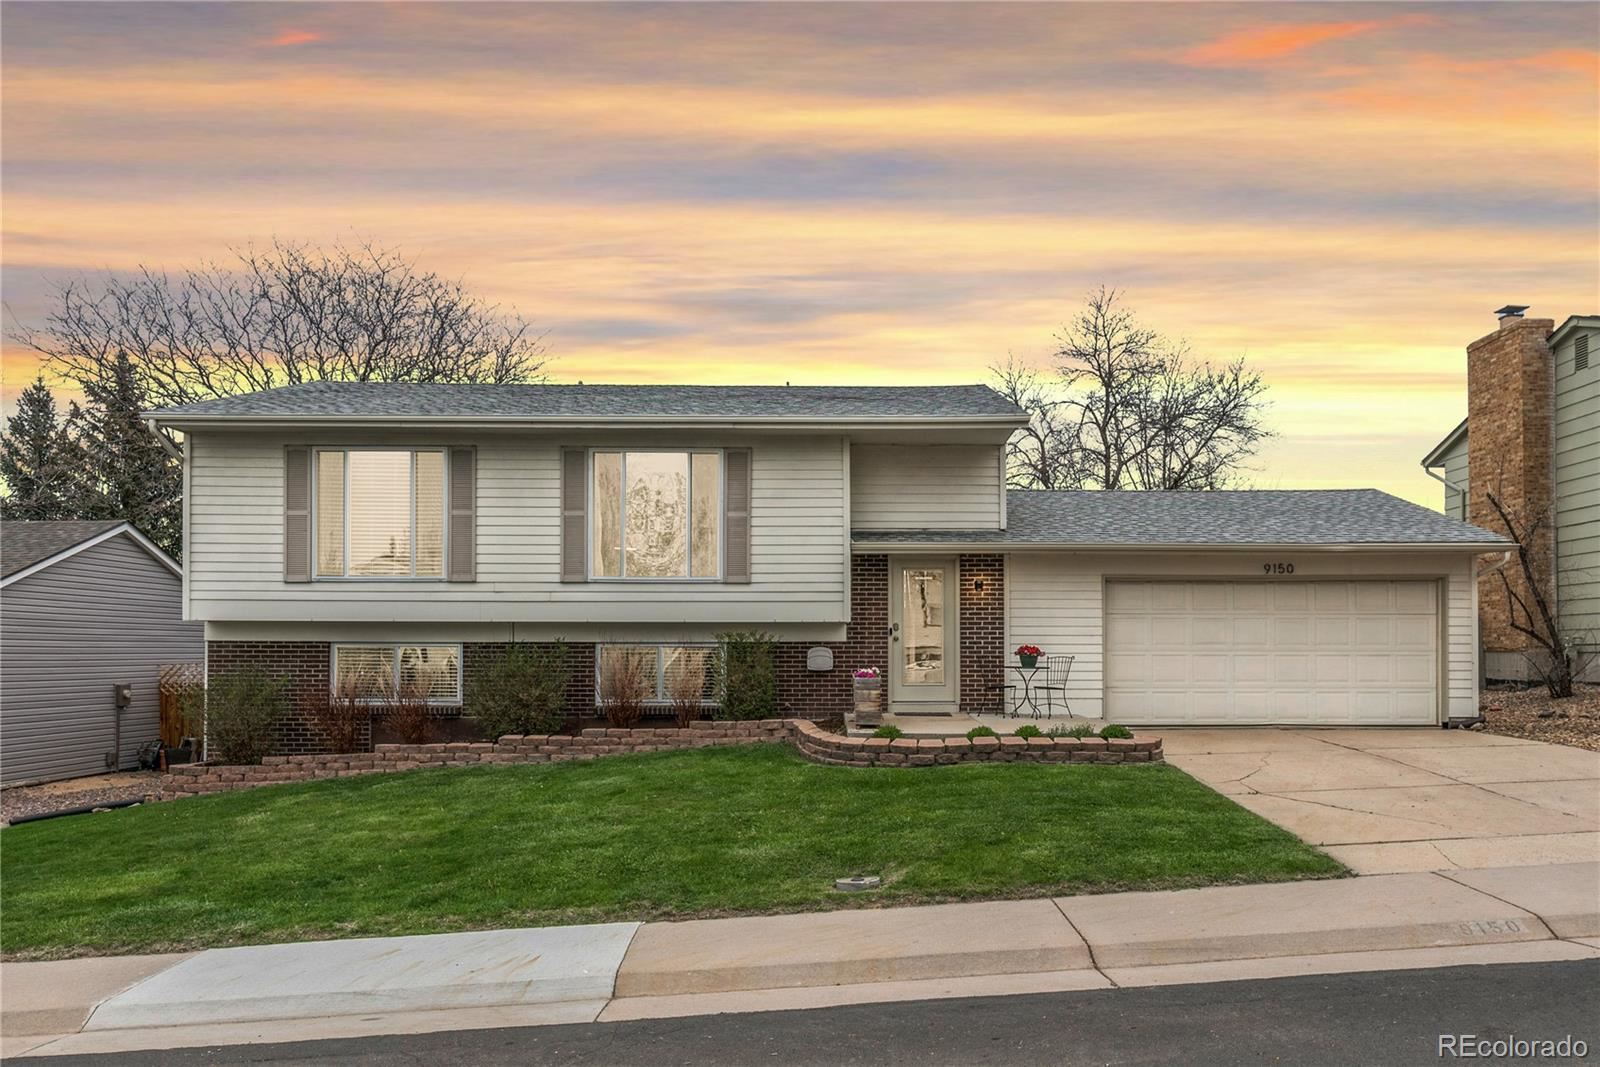 9150 W 96th Drive, Westminster, CO 80021 - #: 3072305